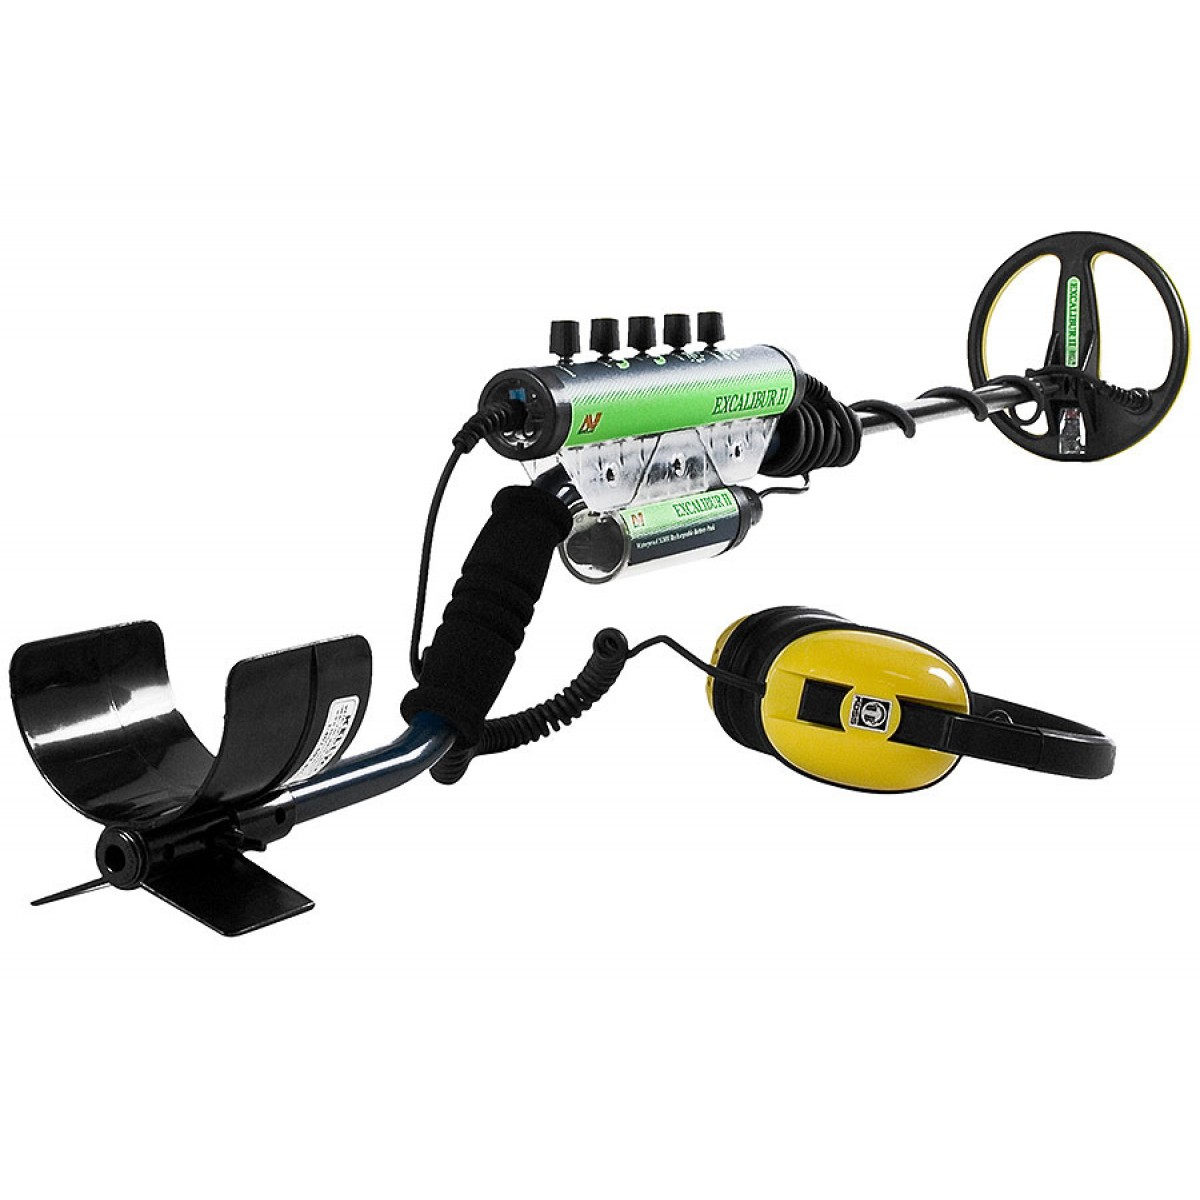 Minelab demo excalibur ii metal detector for sale- kellyco.